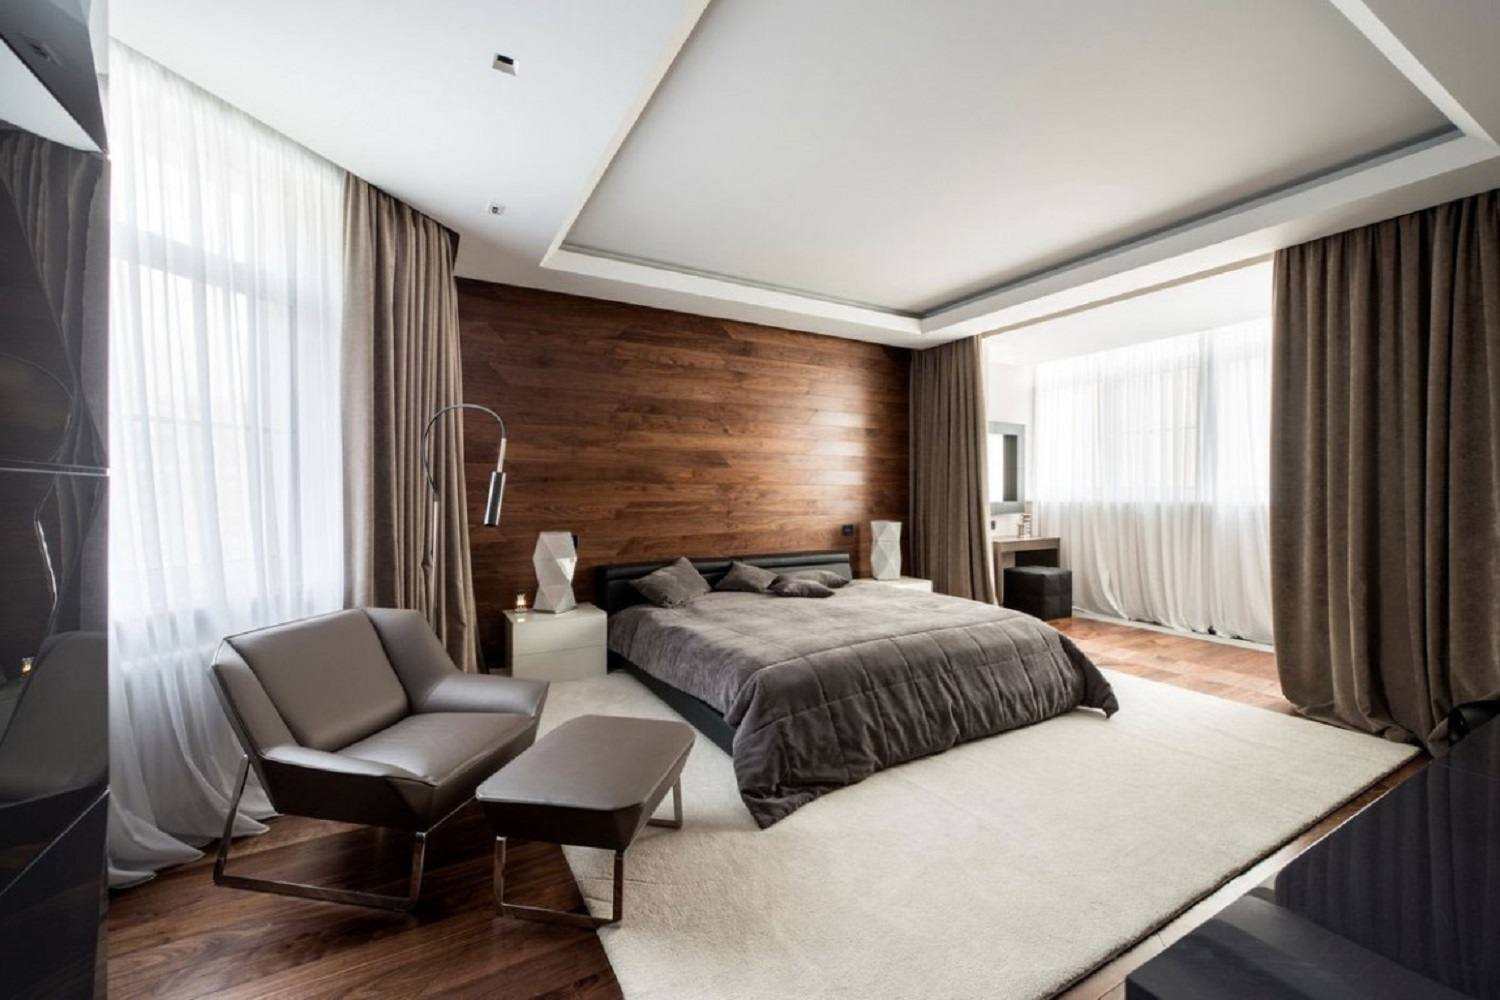 25 Tips And Photos For Decorating A Modern Master Bedroom for 14 Some of the Coolest Designs of How to Build Modern Design For Bedroom